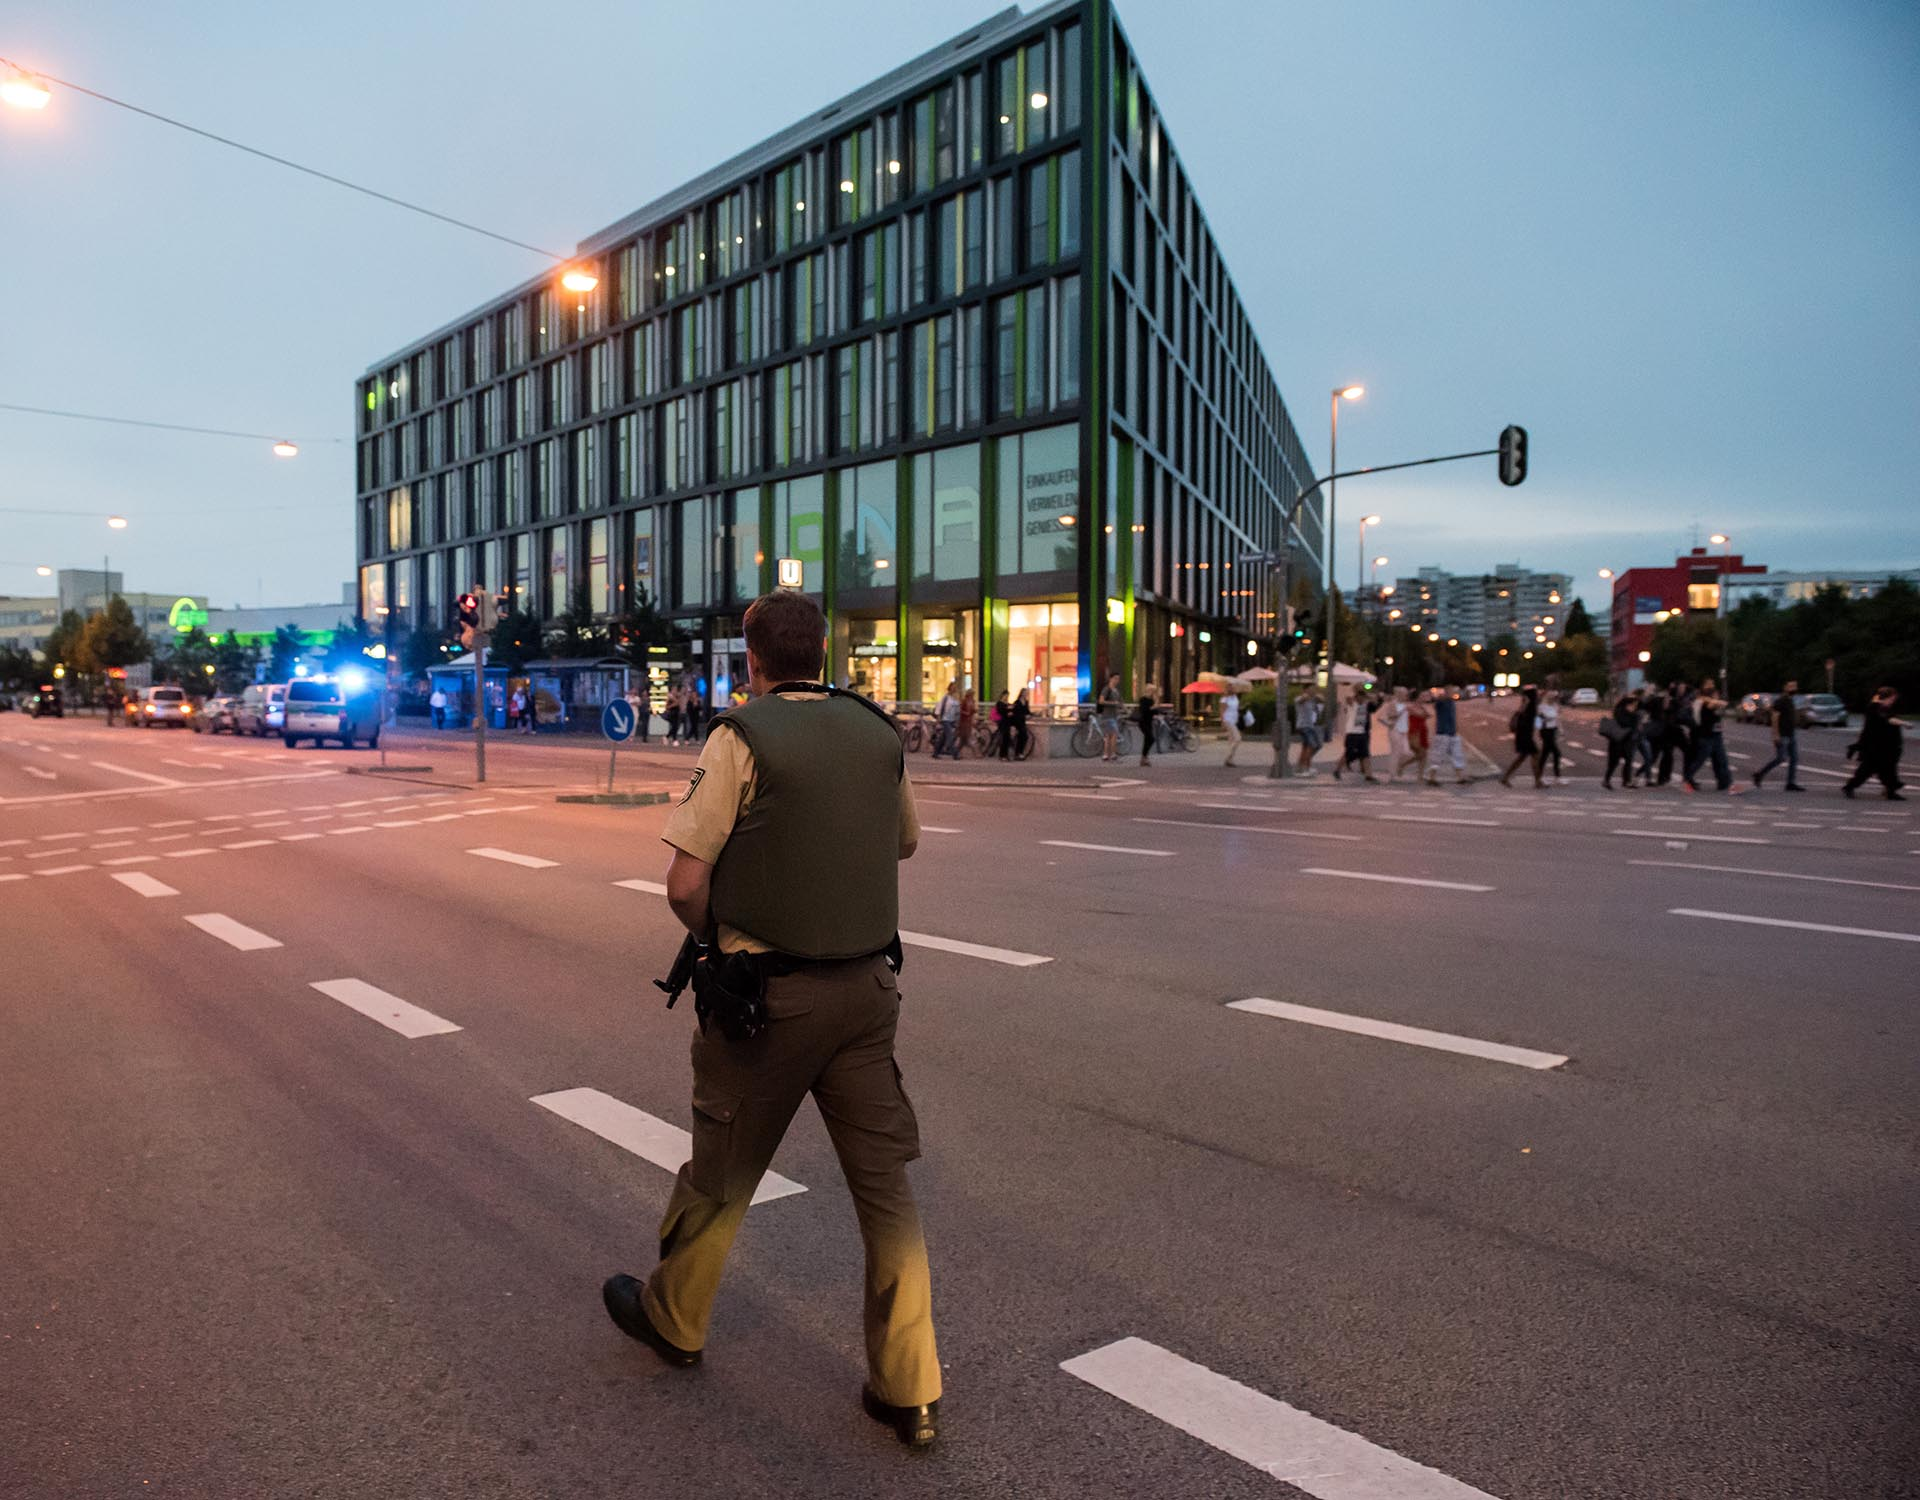 A policeman patrols as people are beeing evacuated (R) from a shopping mall in Munich on July 22, 2016 following a shooting earlier.